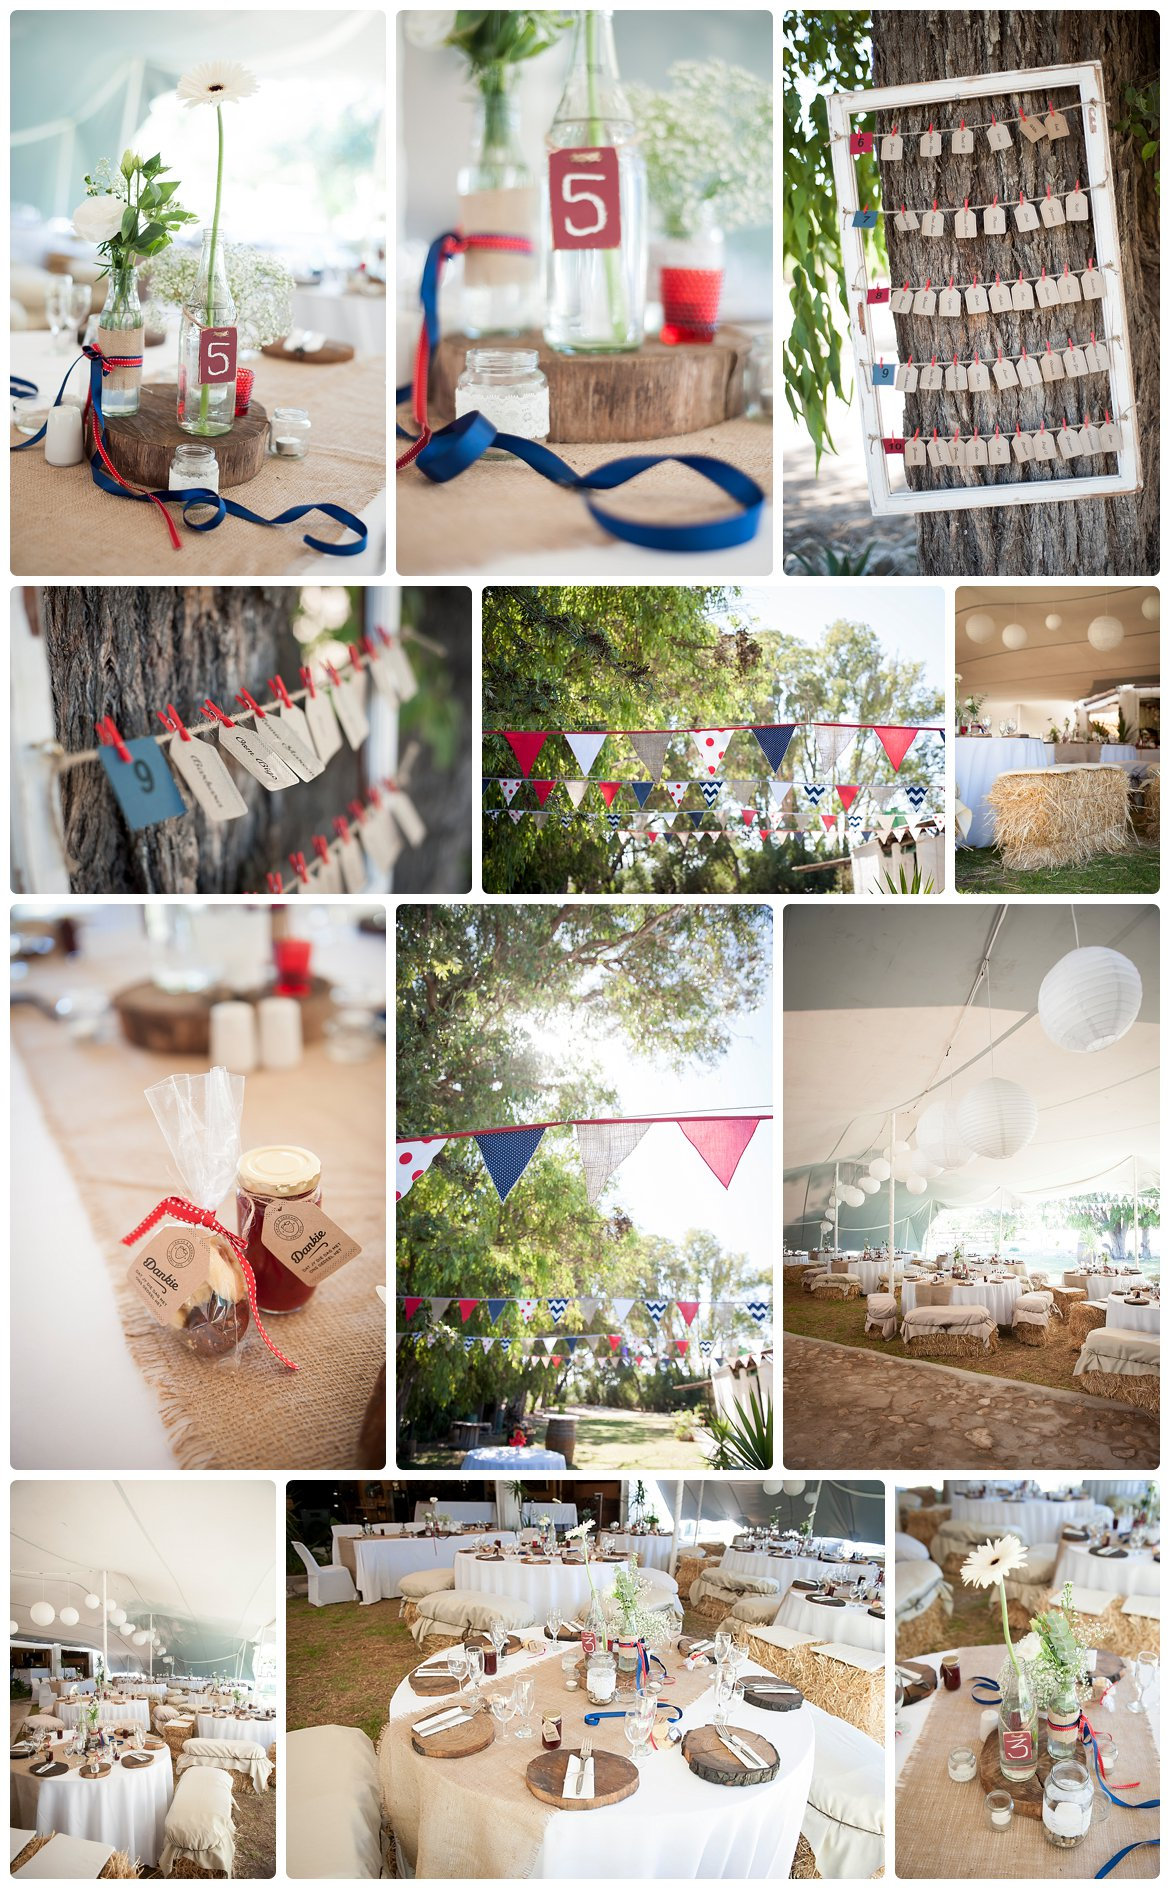 cape-town-wedding-photographer-schaftplaas-langebaan-0004